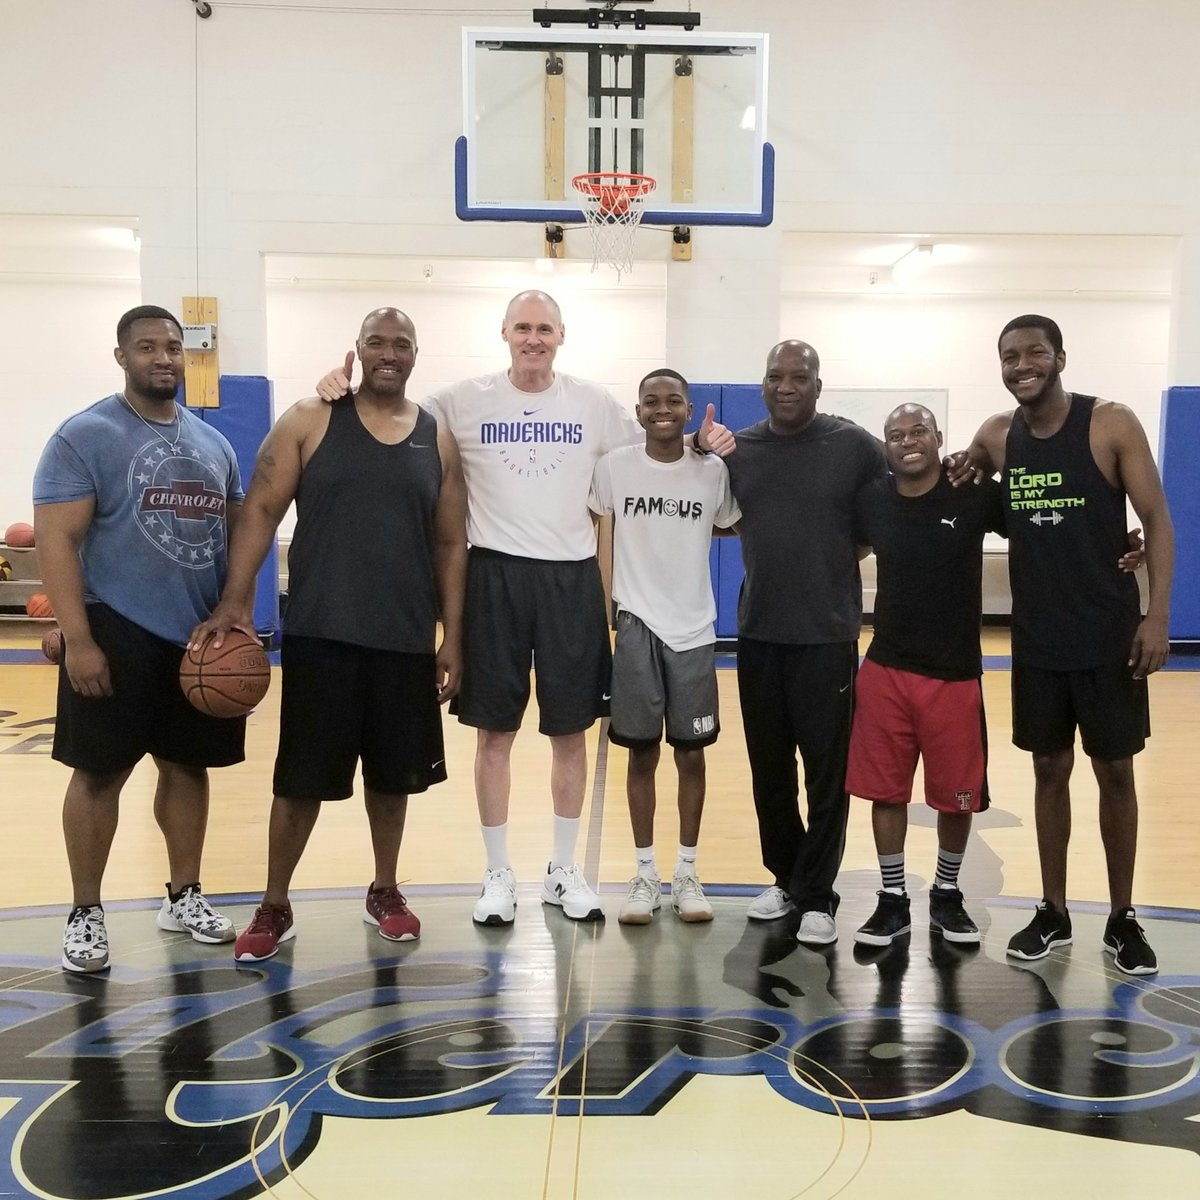 Nothing but good times with these musicians at #FitNotes shooting around & playing fun competitions with #DallasMavericks head coach #RickCarlisle, who loves music & plays piano too! Blessed to live out @the_musicstand vision with @arlingtonjones!